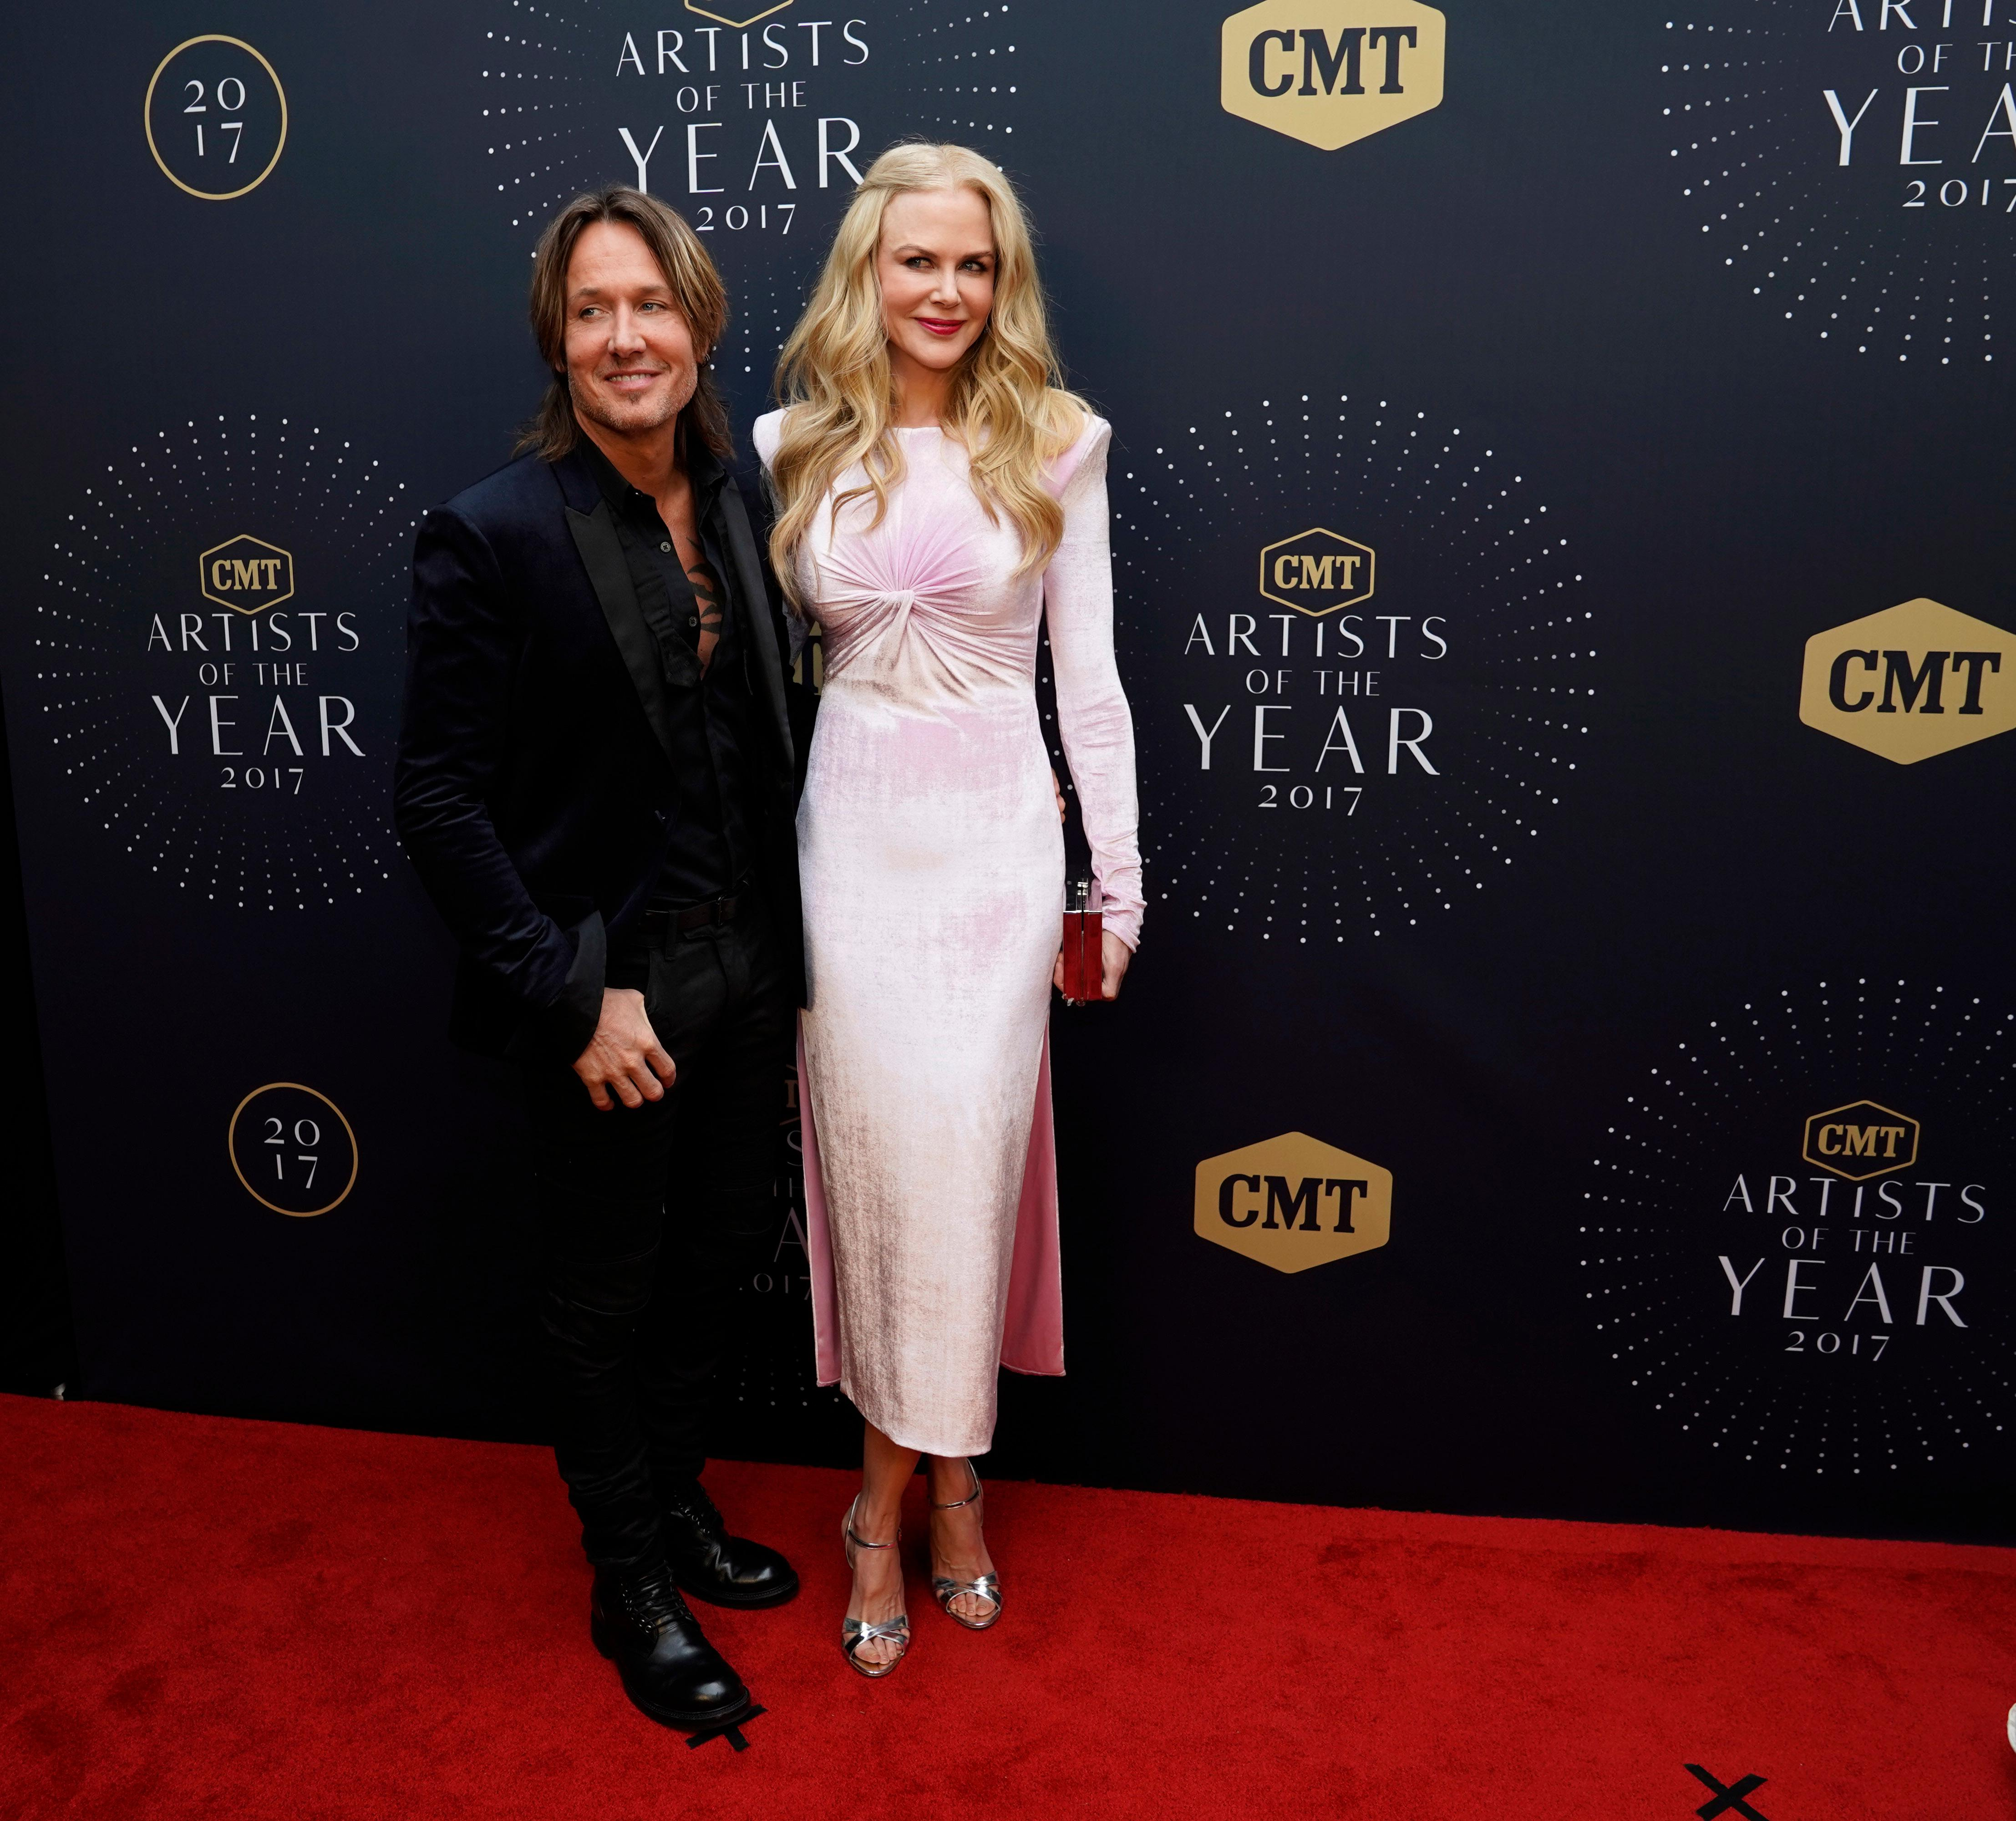 Keith Urban and wife Nicole Kidman seen at the 2017 CMT Artists of the Year at Schermerhorn Symphony Center on Wednesday, Oct. 18, 2017, in Nashville, Tenn. (Photo by Sanford Myers/Invision/AP)